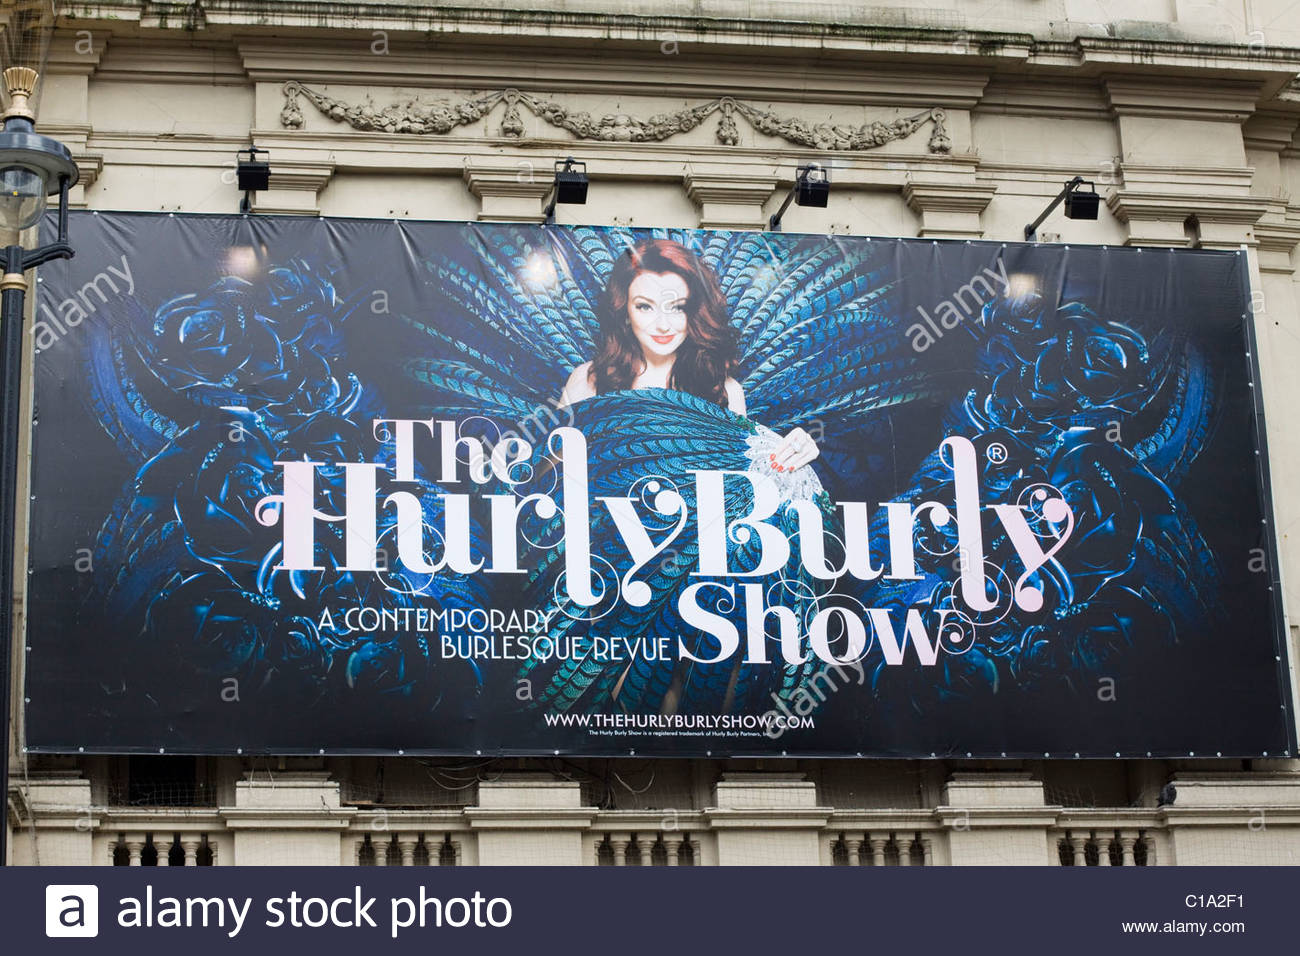 Theater Billboard Advertising the Hurly Burly Show - Stock Image